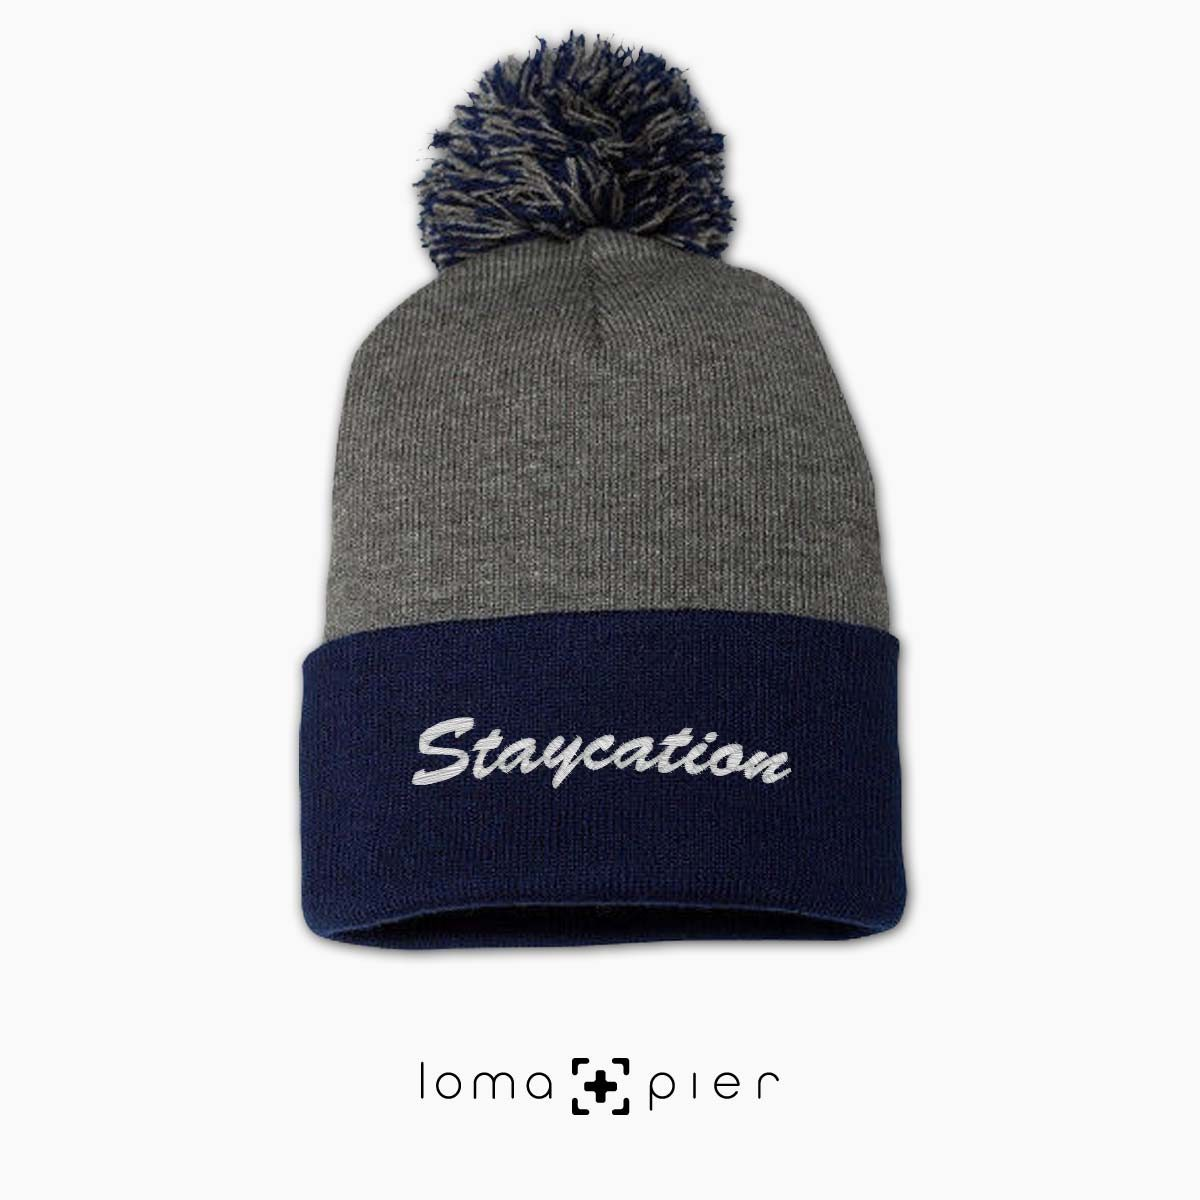 STAYCATION chill saying embroidered on a grey navy pom pom beanie by loma+pier hat store